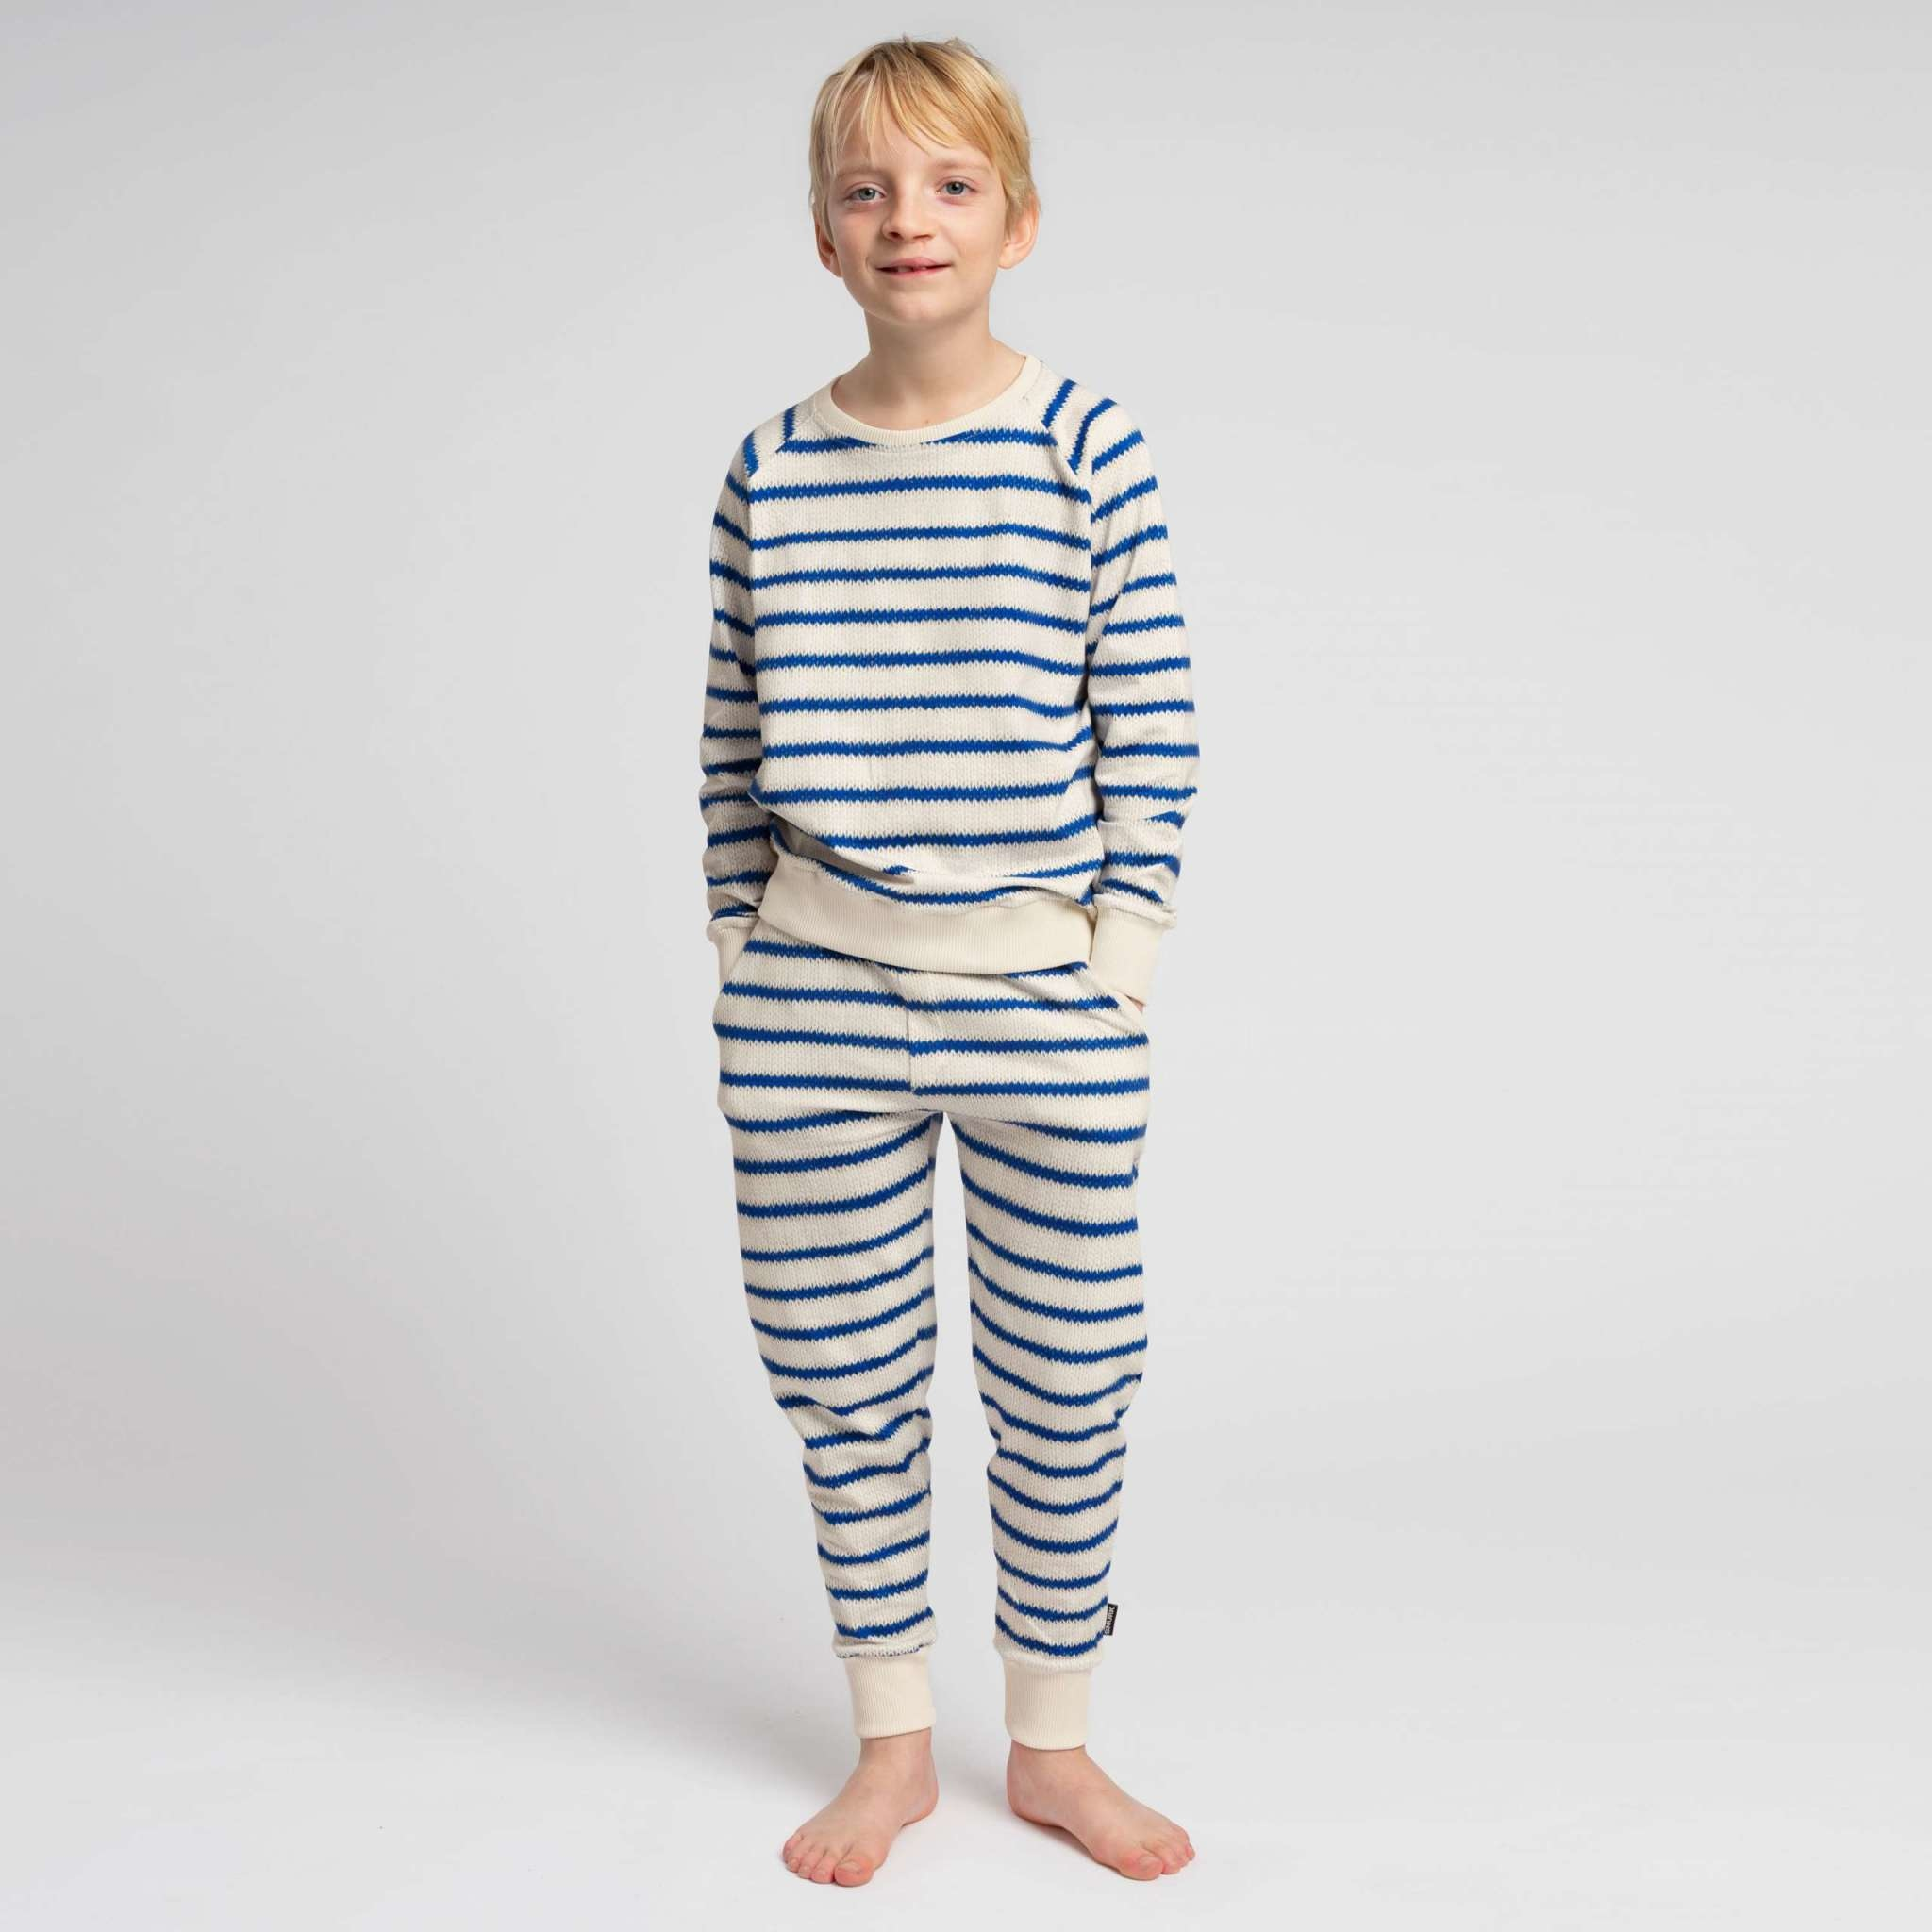 Snurk Snurk - Breton blue pants kids